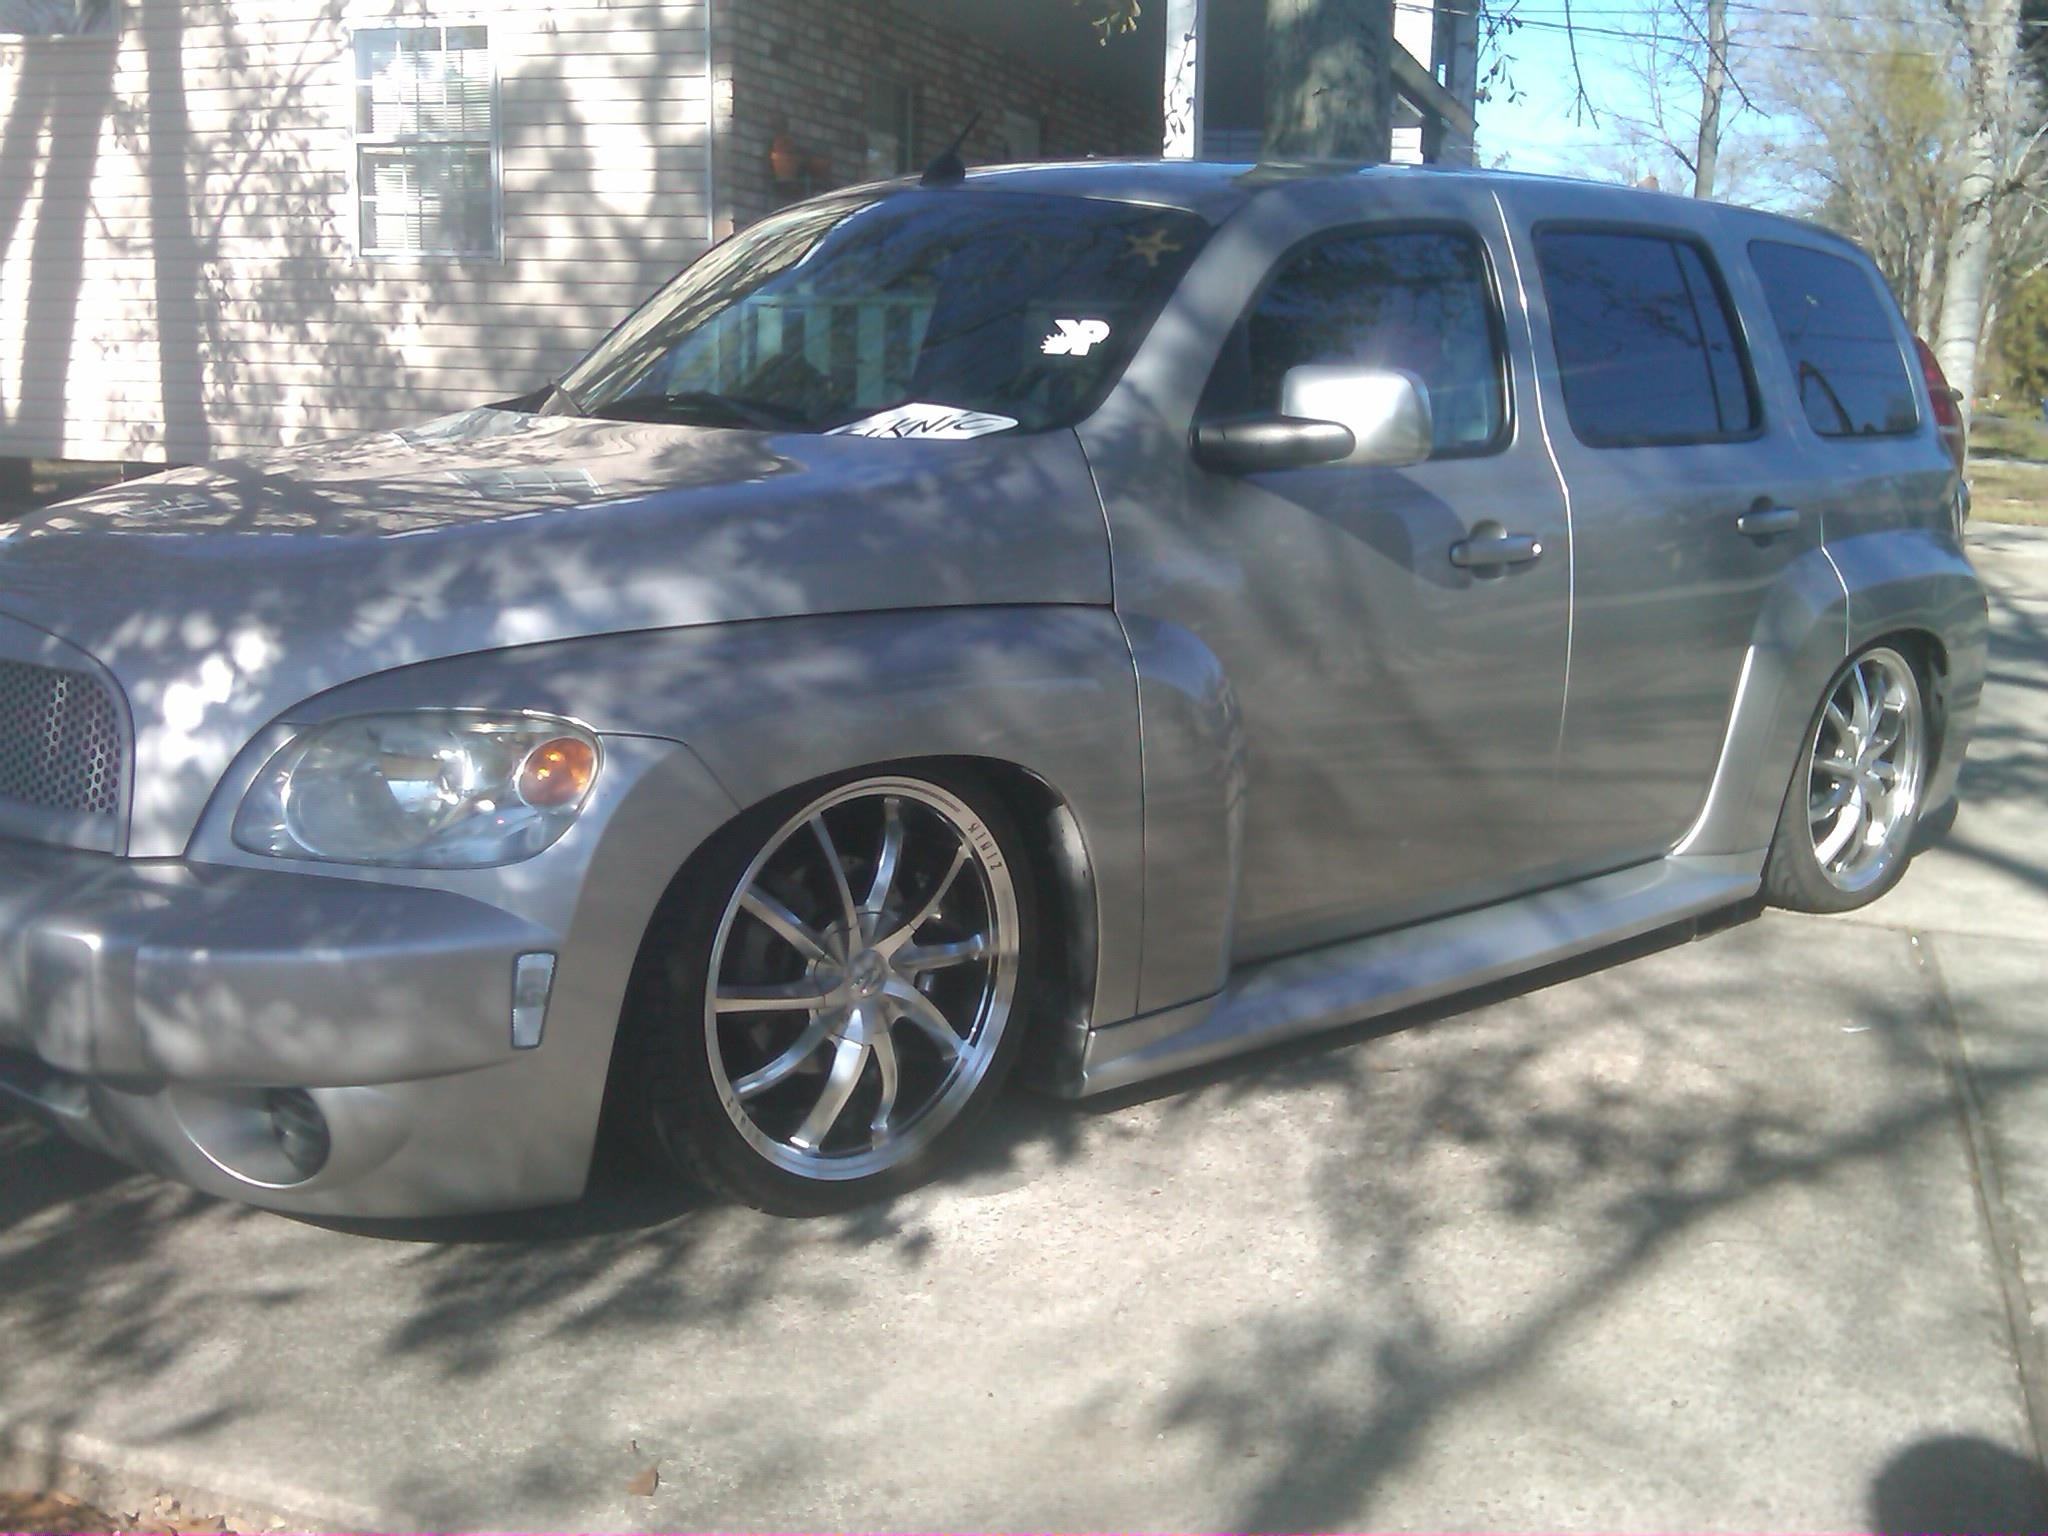 Another lunchbox_mafioso 2006 Chevrolet HHR post... - 12750780